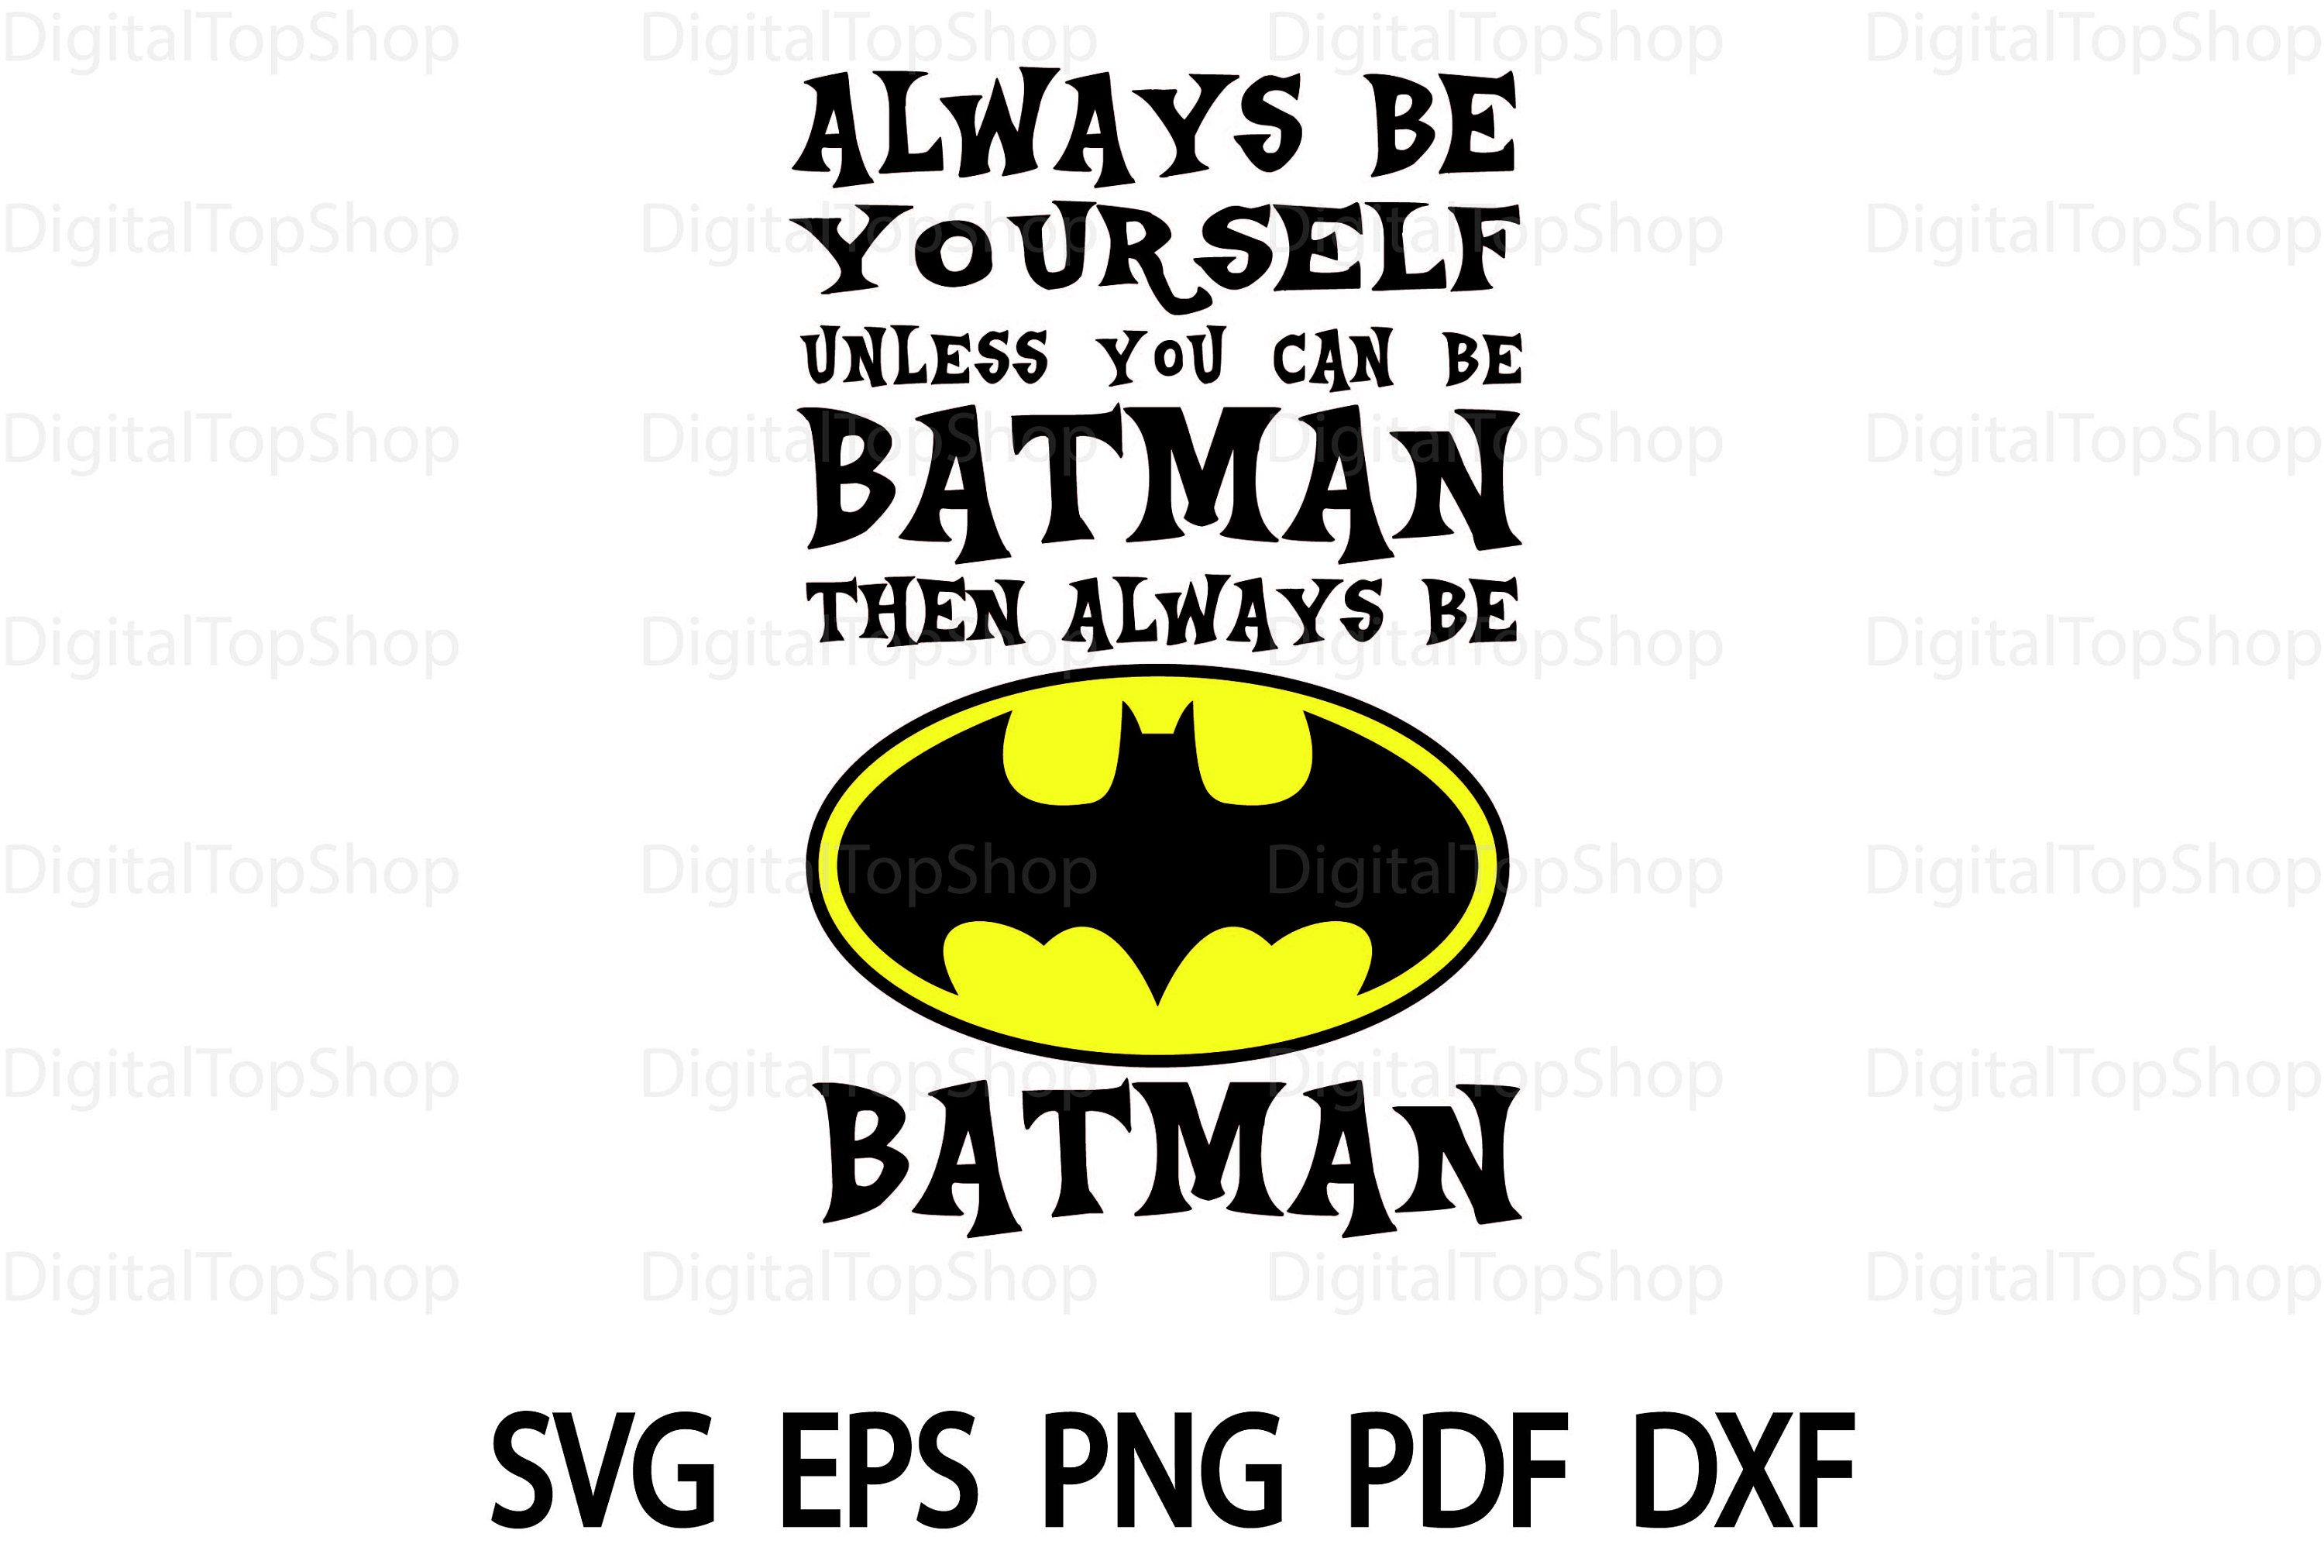 Batman Svg Always Be Yourself Unless You Can Be Batman Then Always